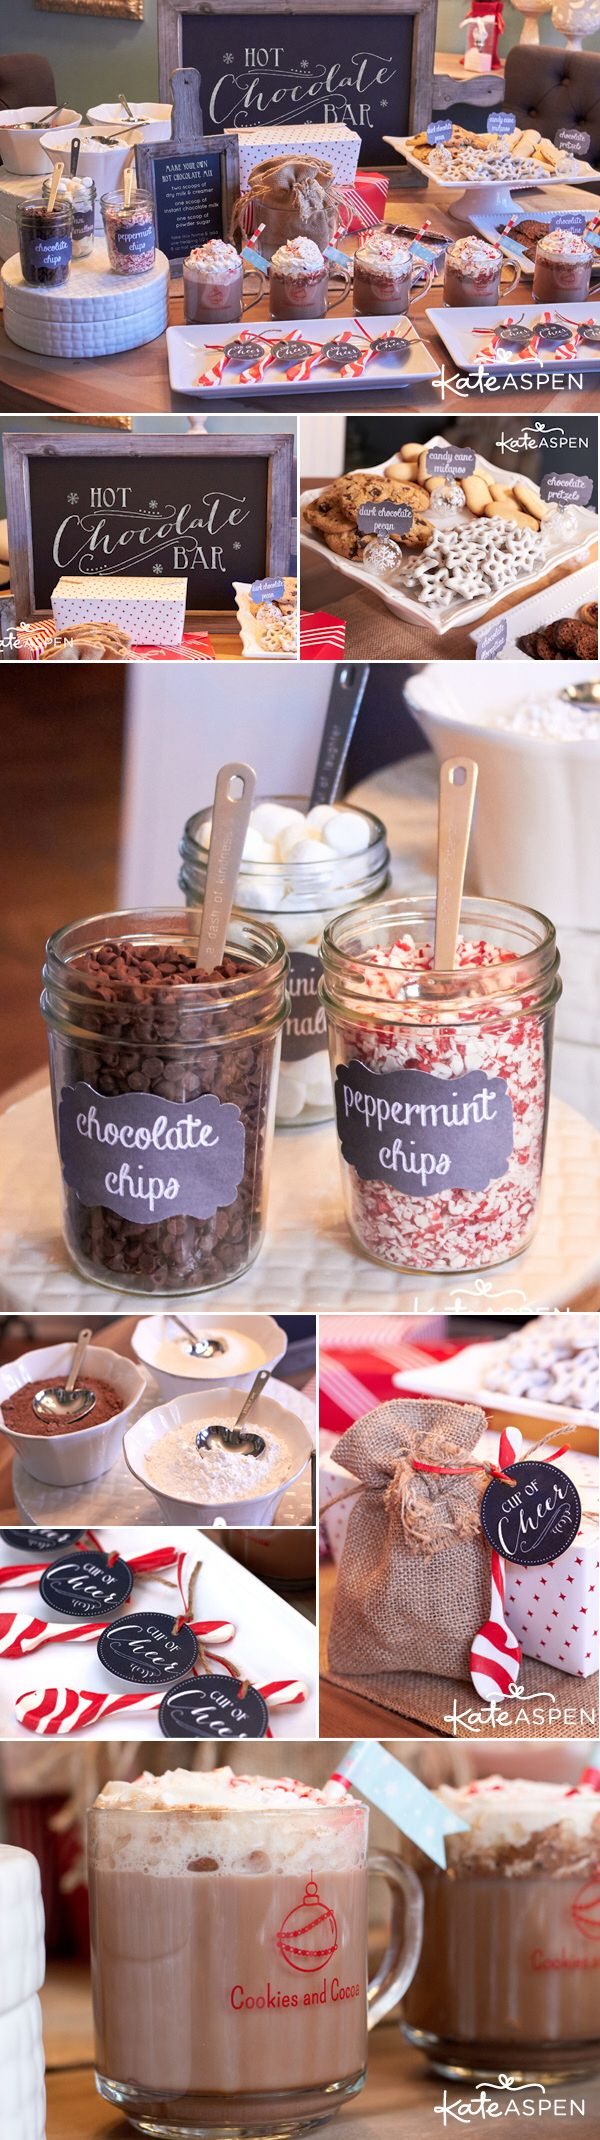 Give your winter wedding guests a little something to warm their hearts and hands by setting up a self-serve hot chocolate bar with all the fixings!  To make it easy, we carry all the Kate Aspen supplies that you need to put this fun and festive hot chocolate bar together including the coffee mugs, heart-shaped measuring spoons, ornament place card holders, red & white straws, glass chalkboard clings, favor bags and more.  http://www.kateaspen.com/blog/2014/12/09/cookies-cocoa-holiday-party/